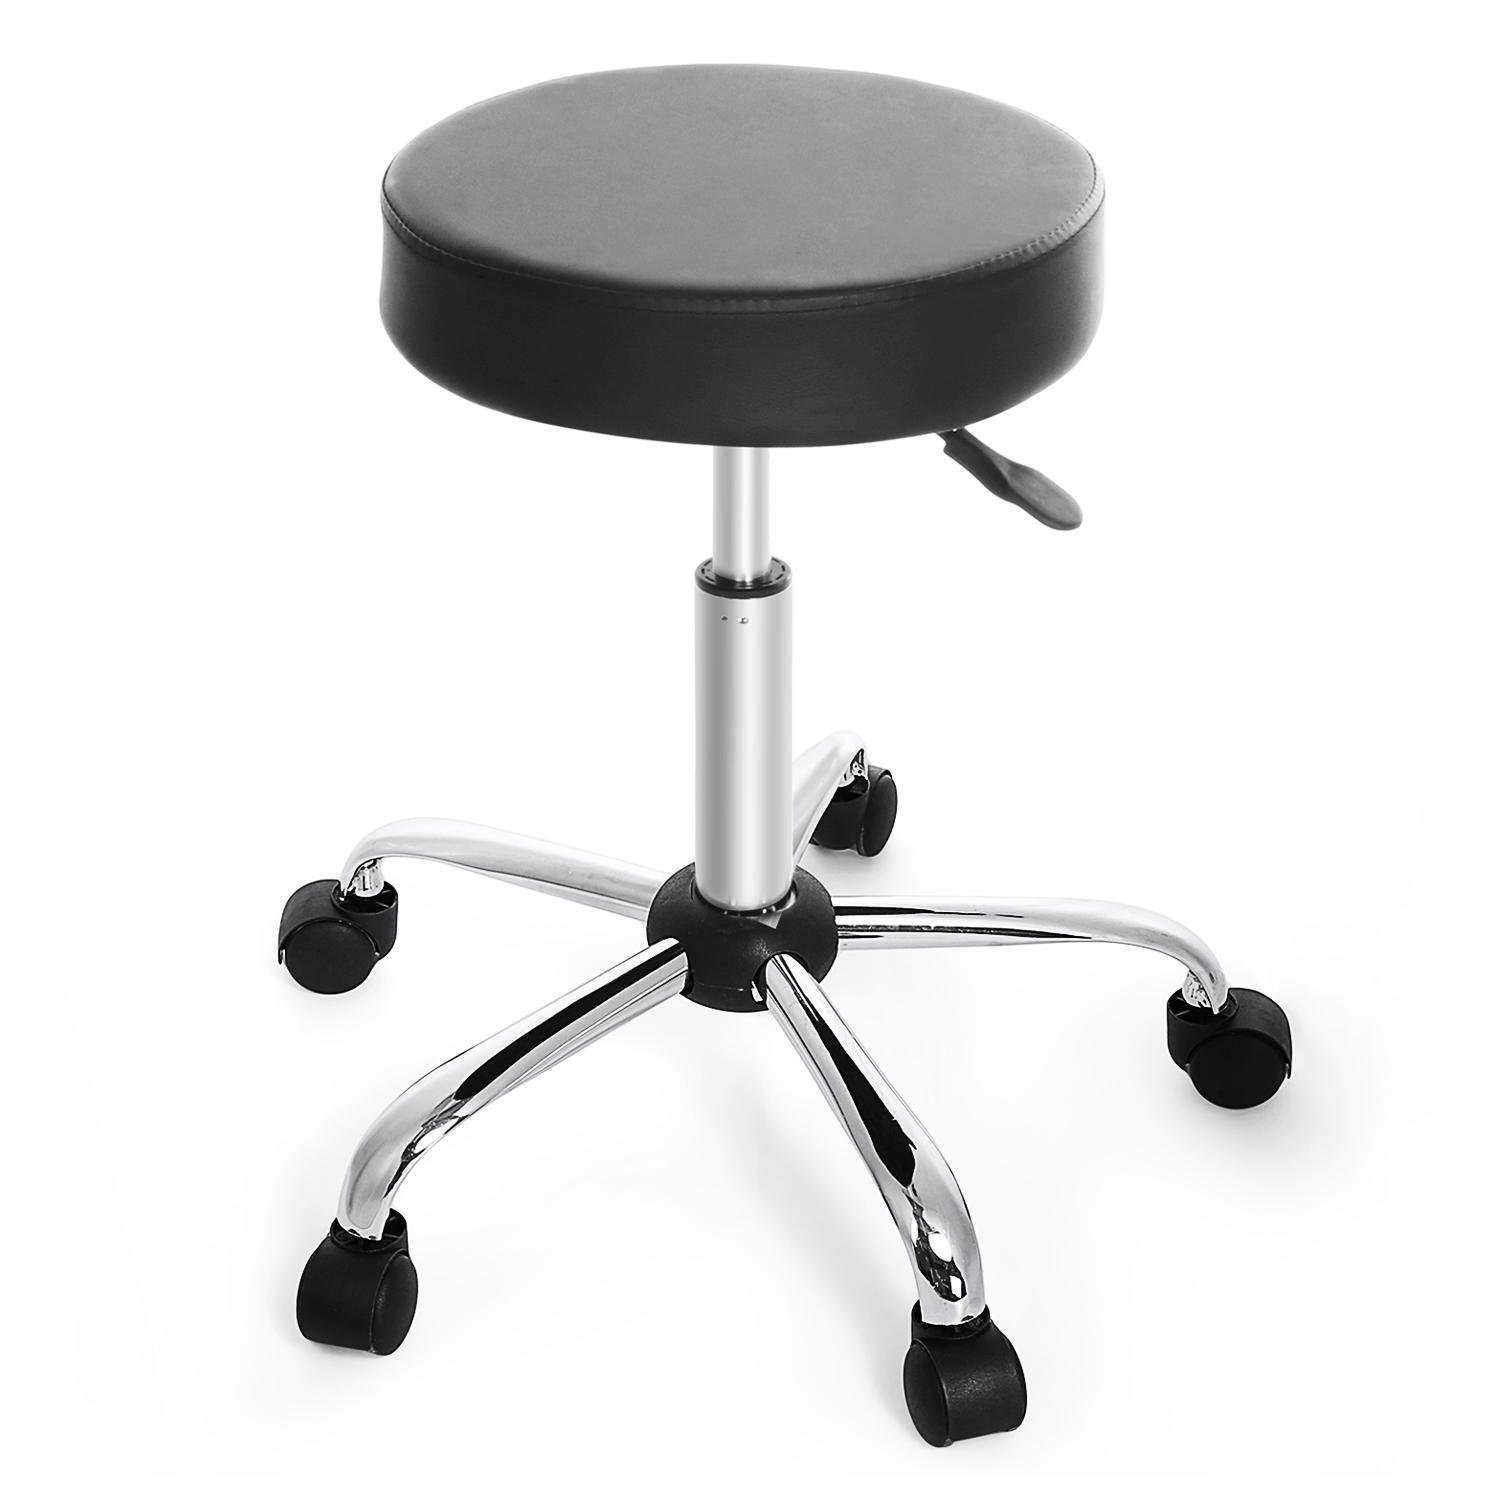 Asatr Synthetic Leather Round Seat Adjustable Rolling Stool for Massage, Medical, Salon, Office